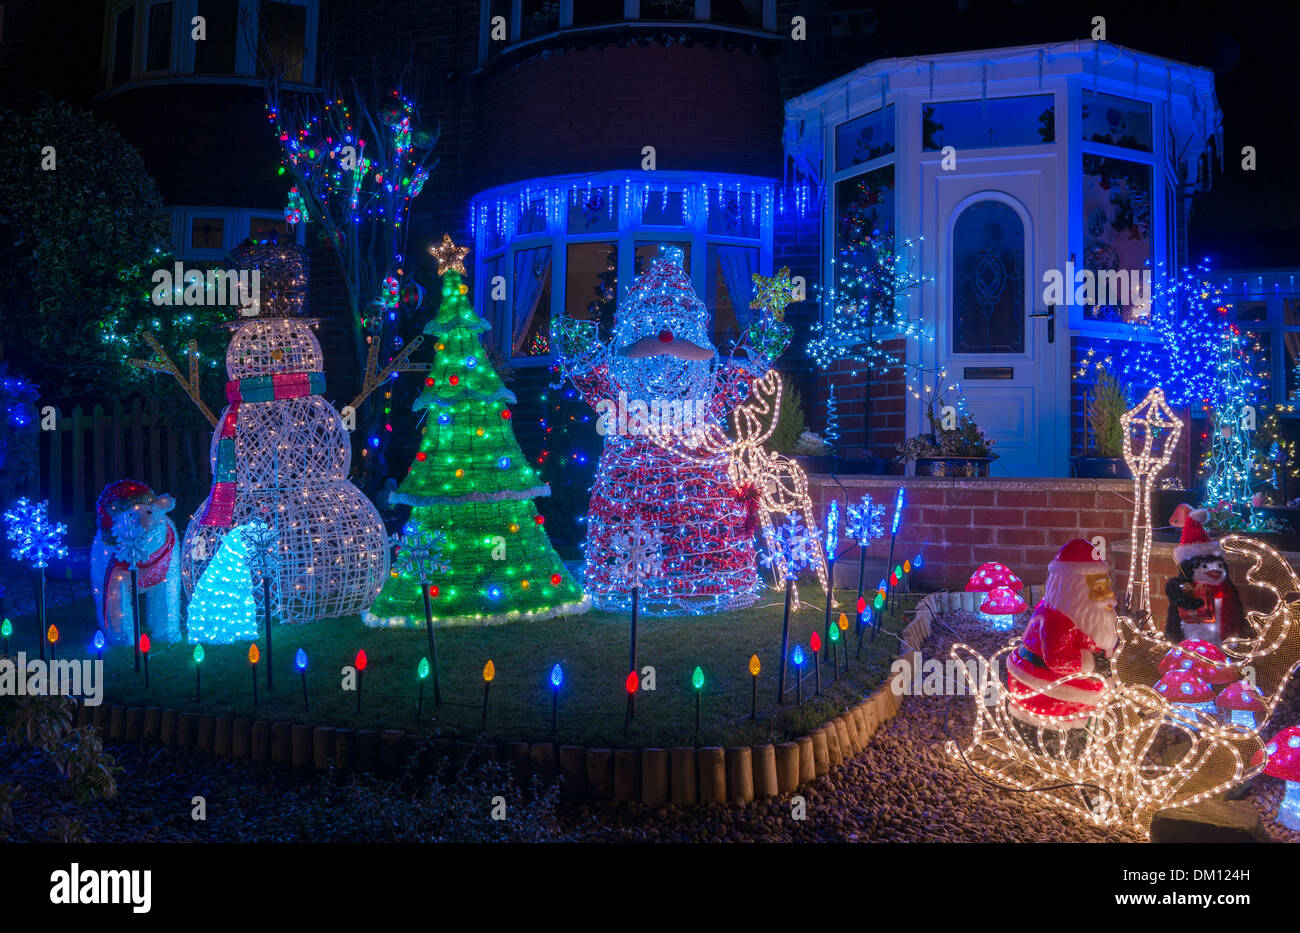 house-and-garden-decorated-with-christma